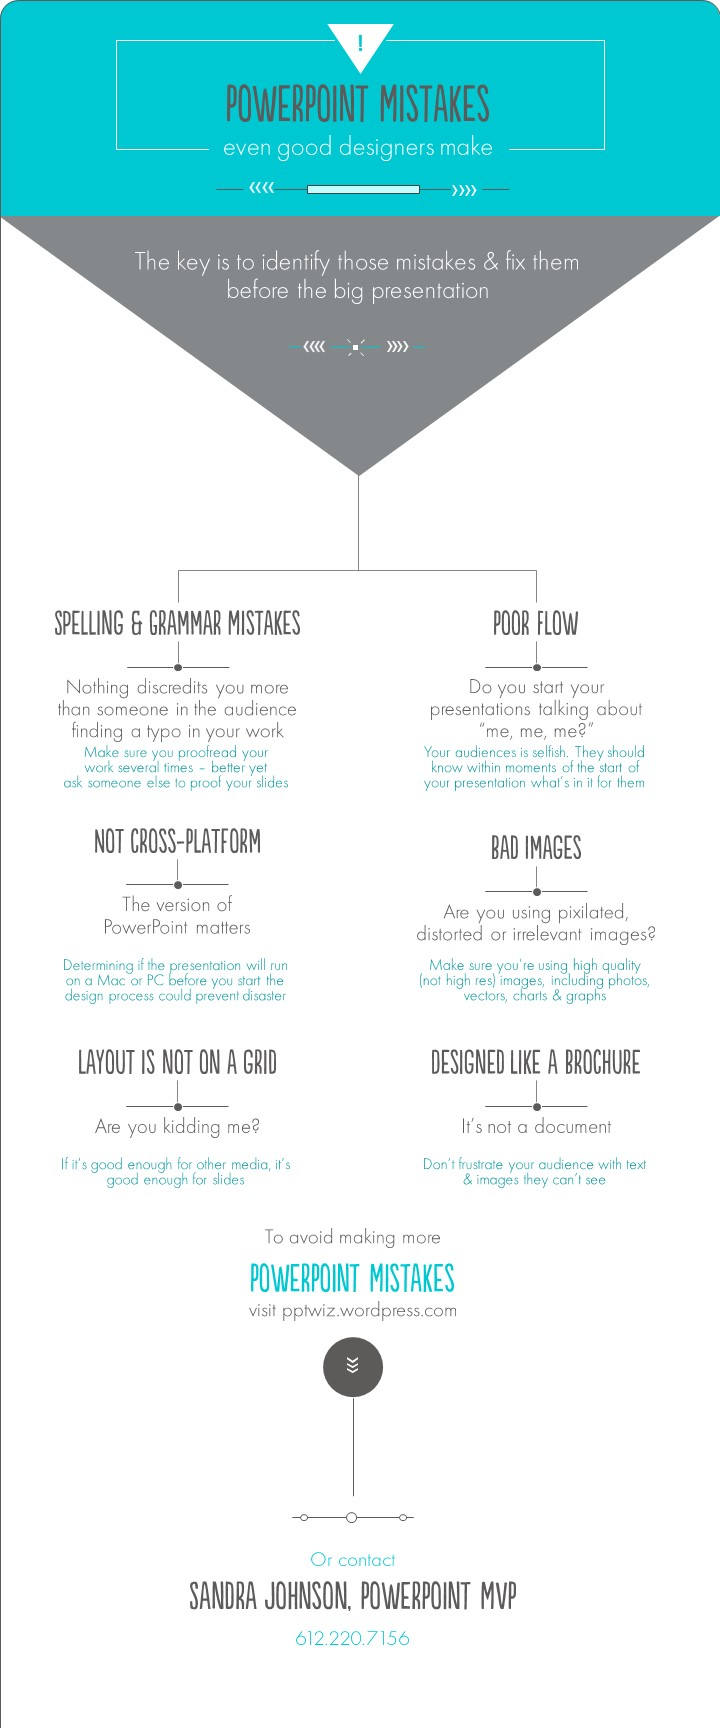 Even great designers make mistakes when creating PowerPoint slides. The key is to avoid these before the big presentation. Click the image to download a PDF of PowerPoint Mistakes.